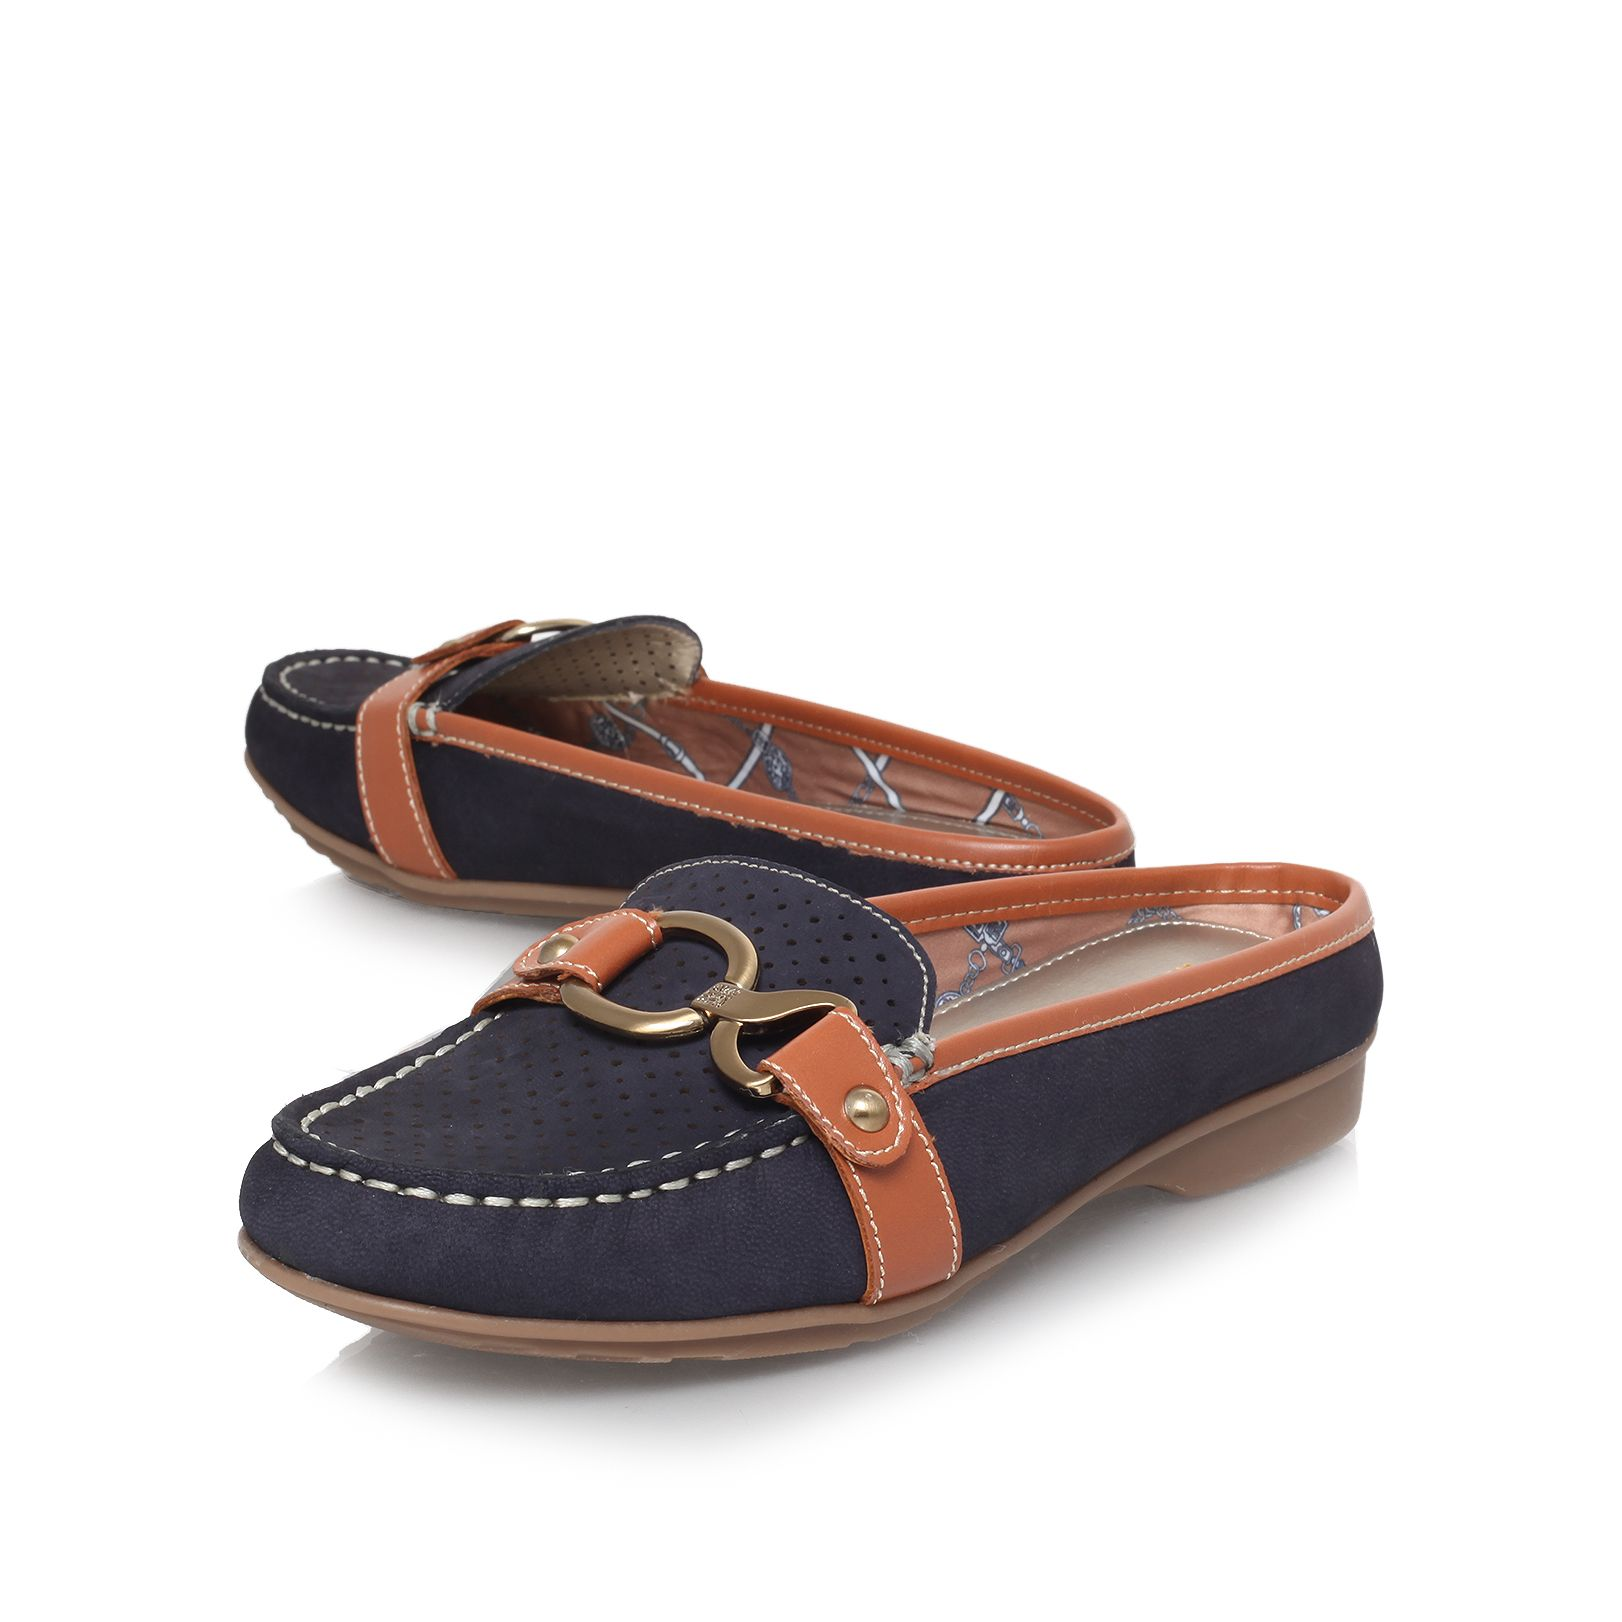 Hildred flat loafer shoes